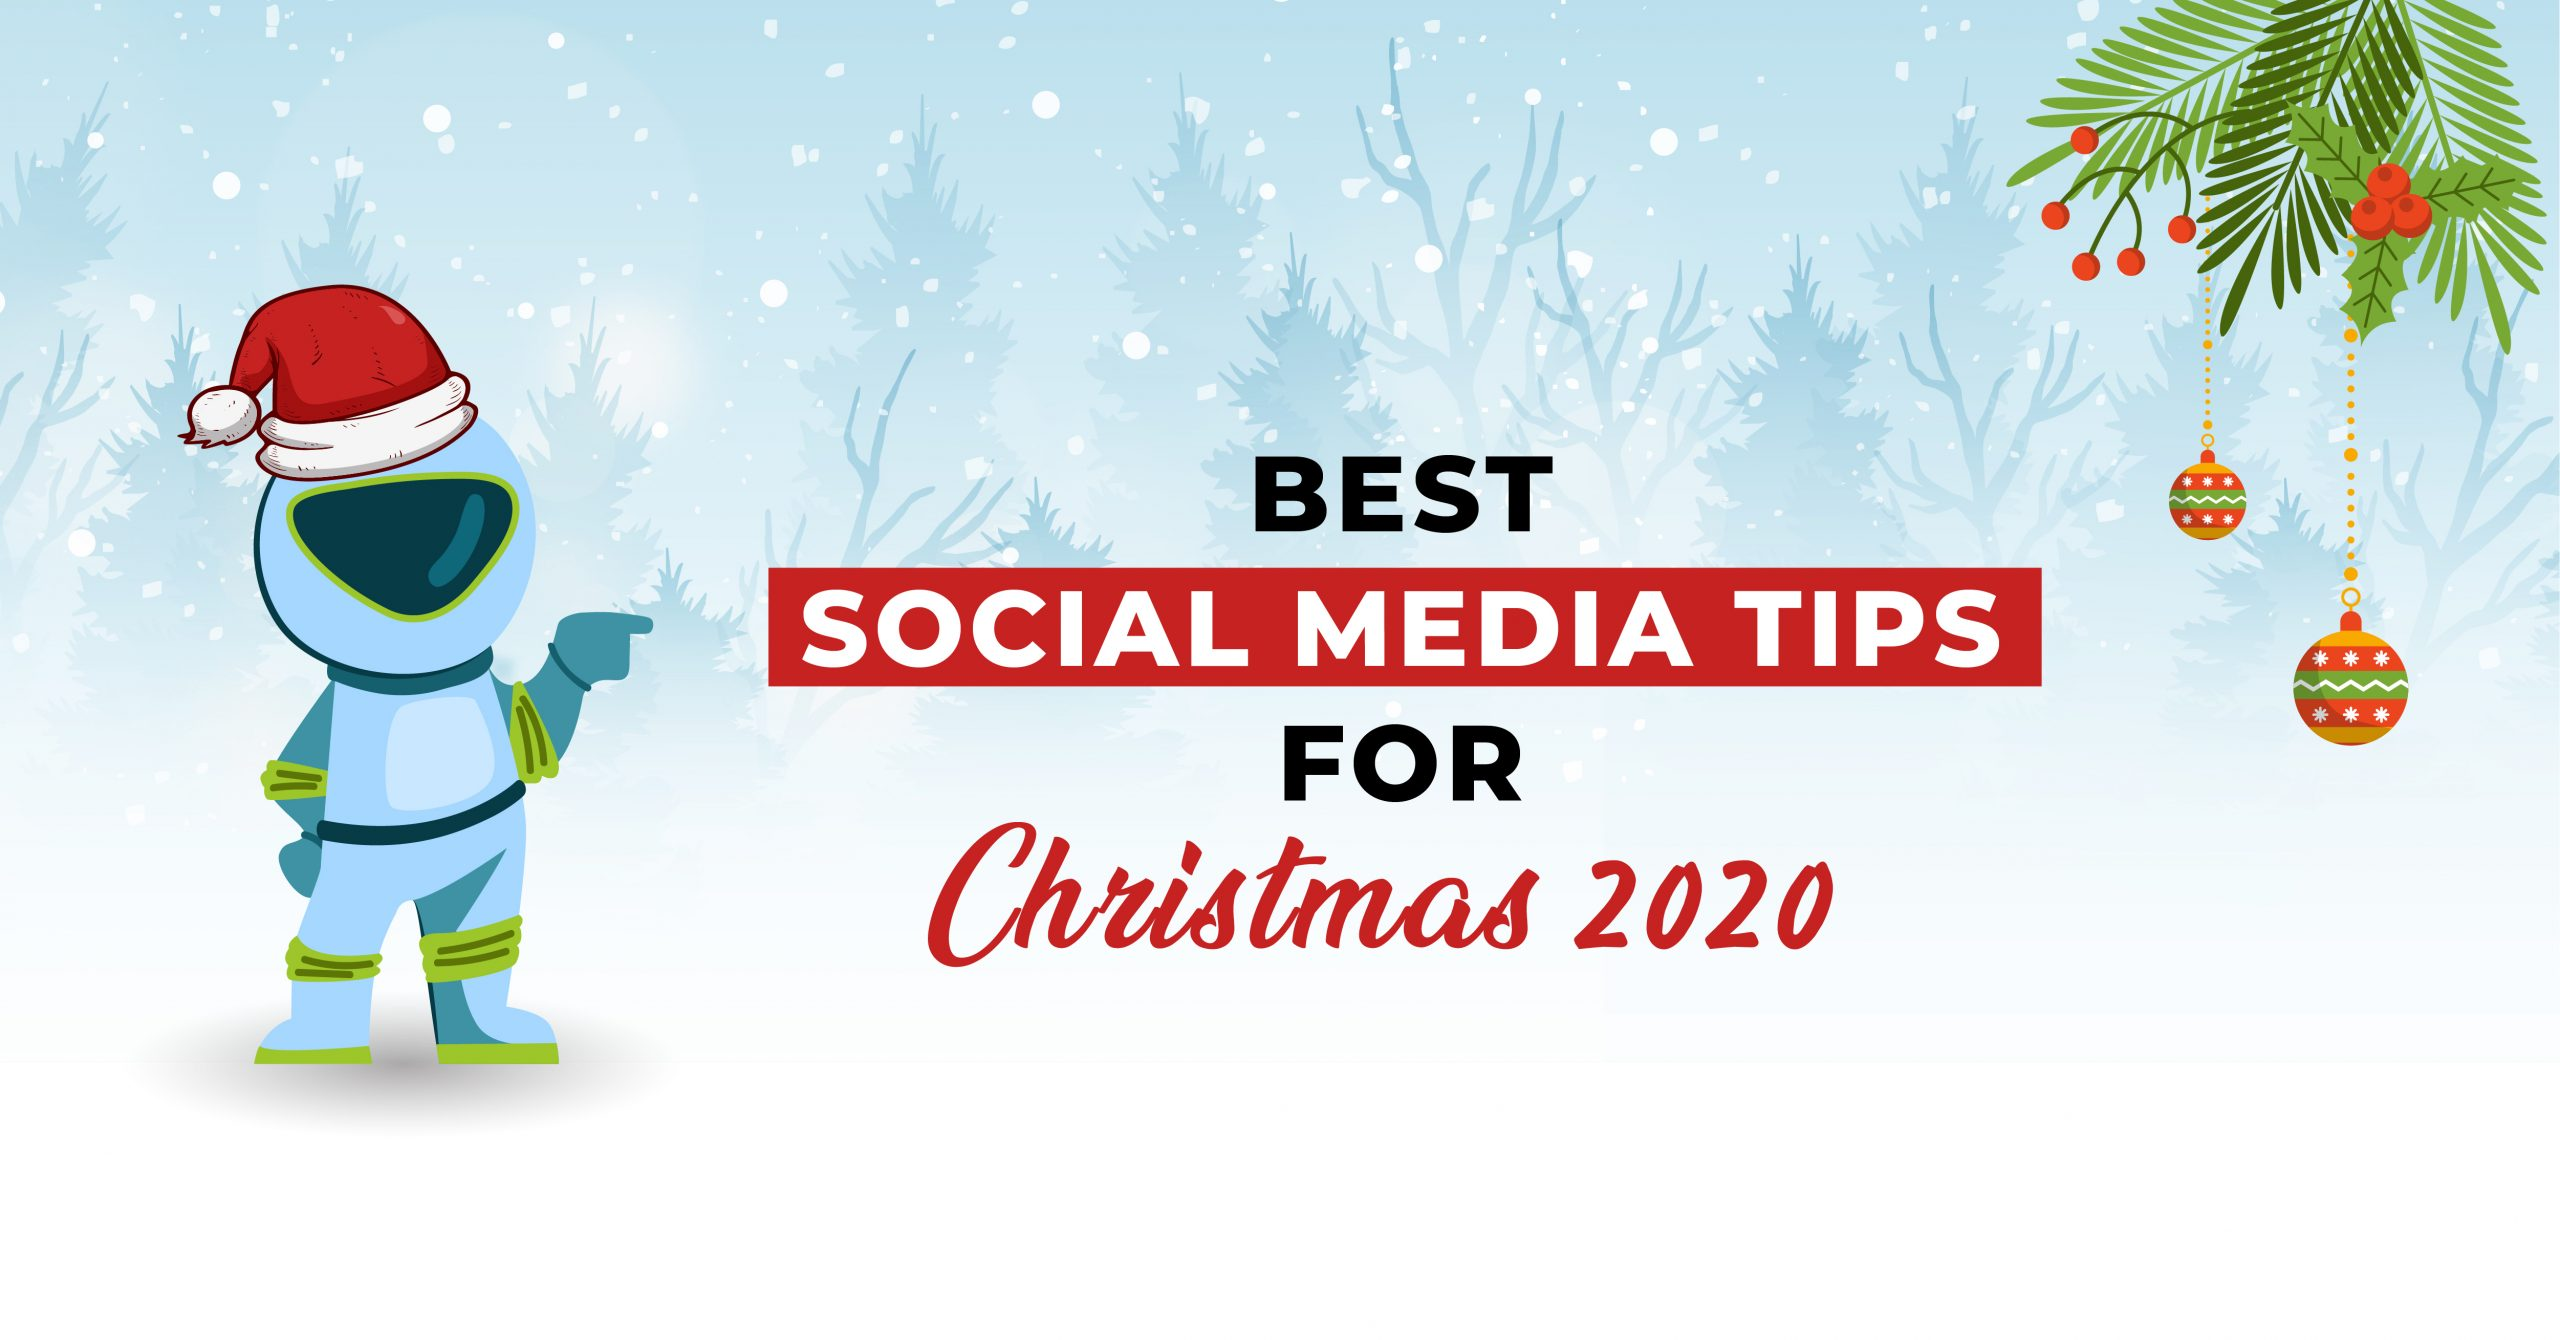 Best Social Media Tips For Christmas 2020